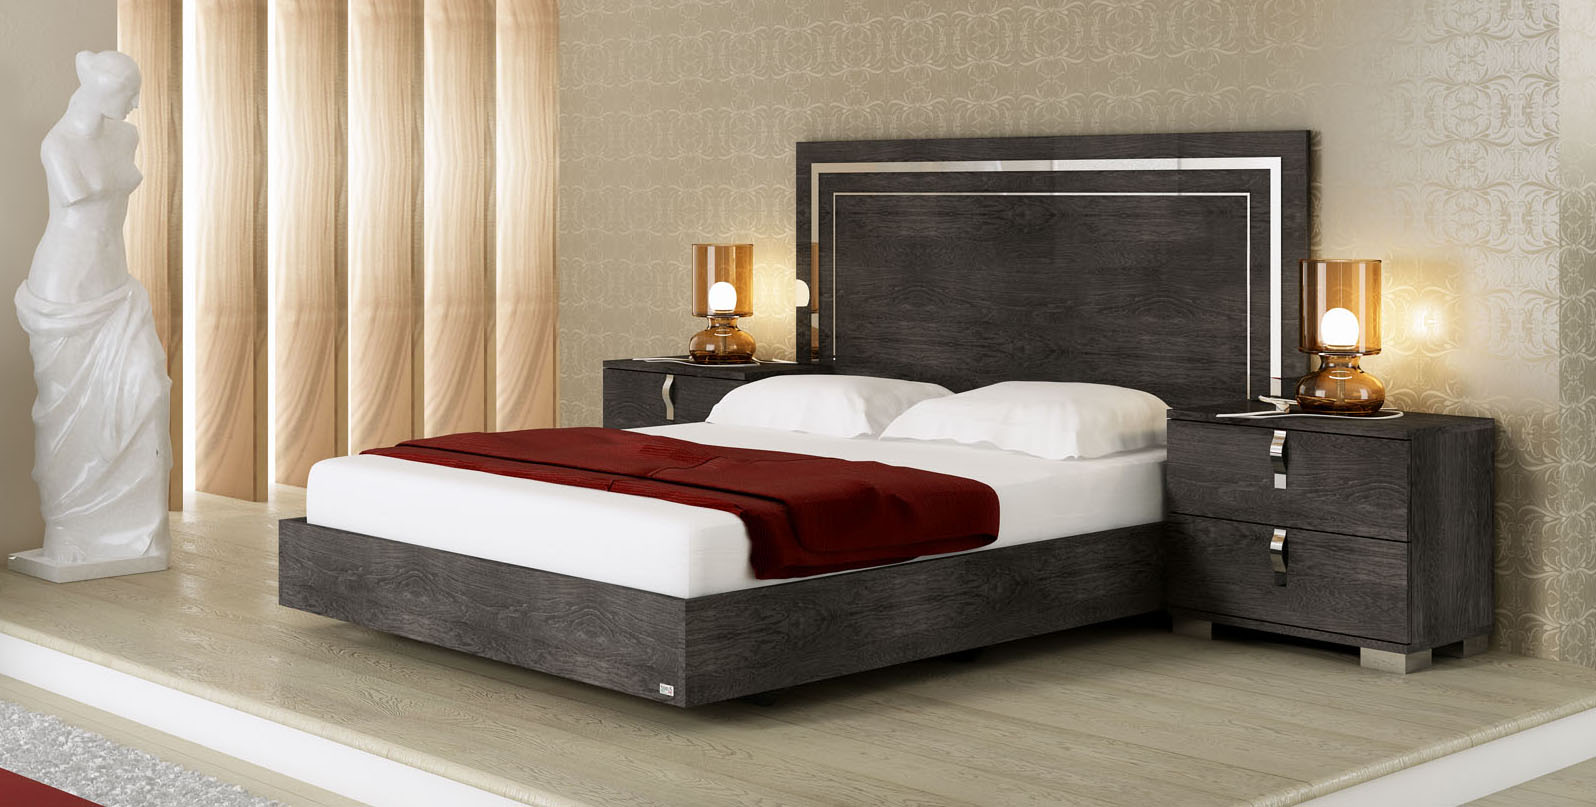 Lacquered Made In Italy Quality Luxury Platform Bed Boston